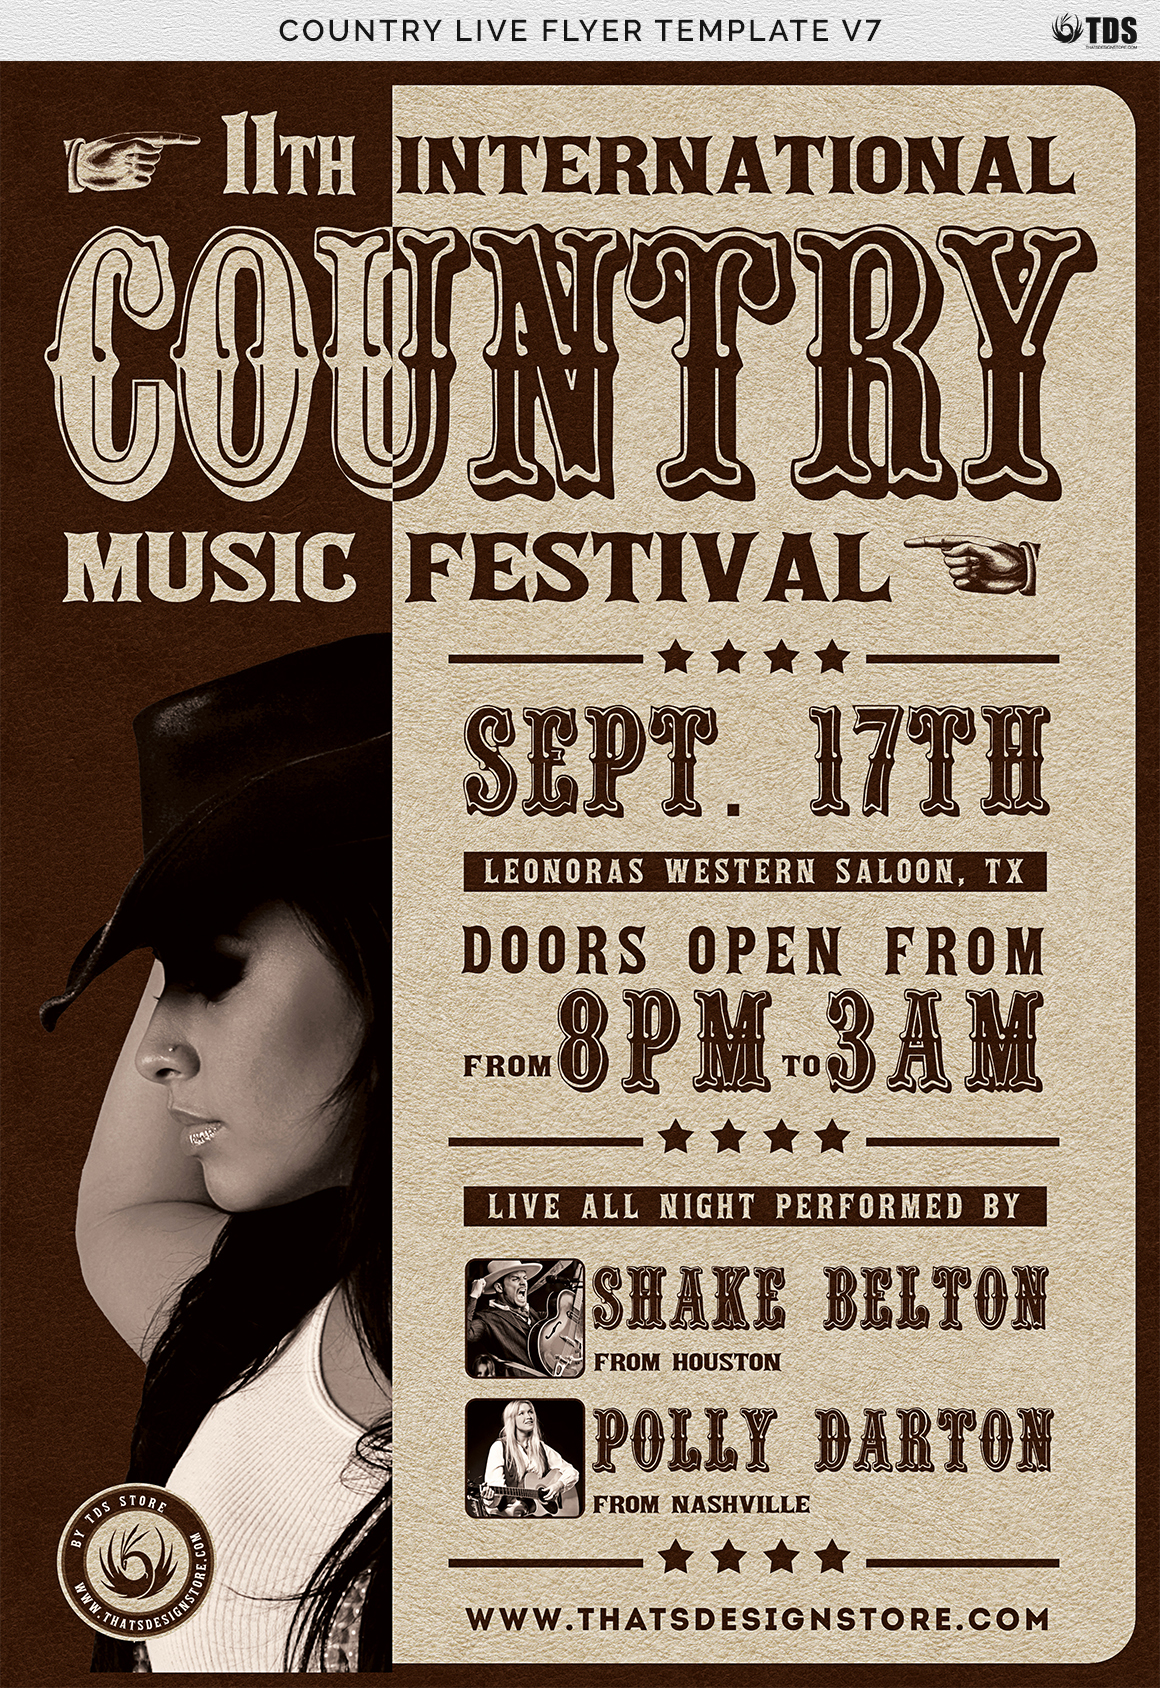 Country Live Flyer Template V7 example image 7